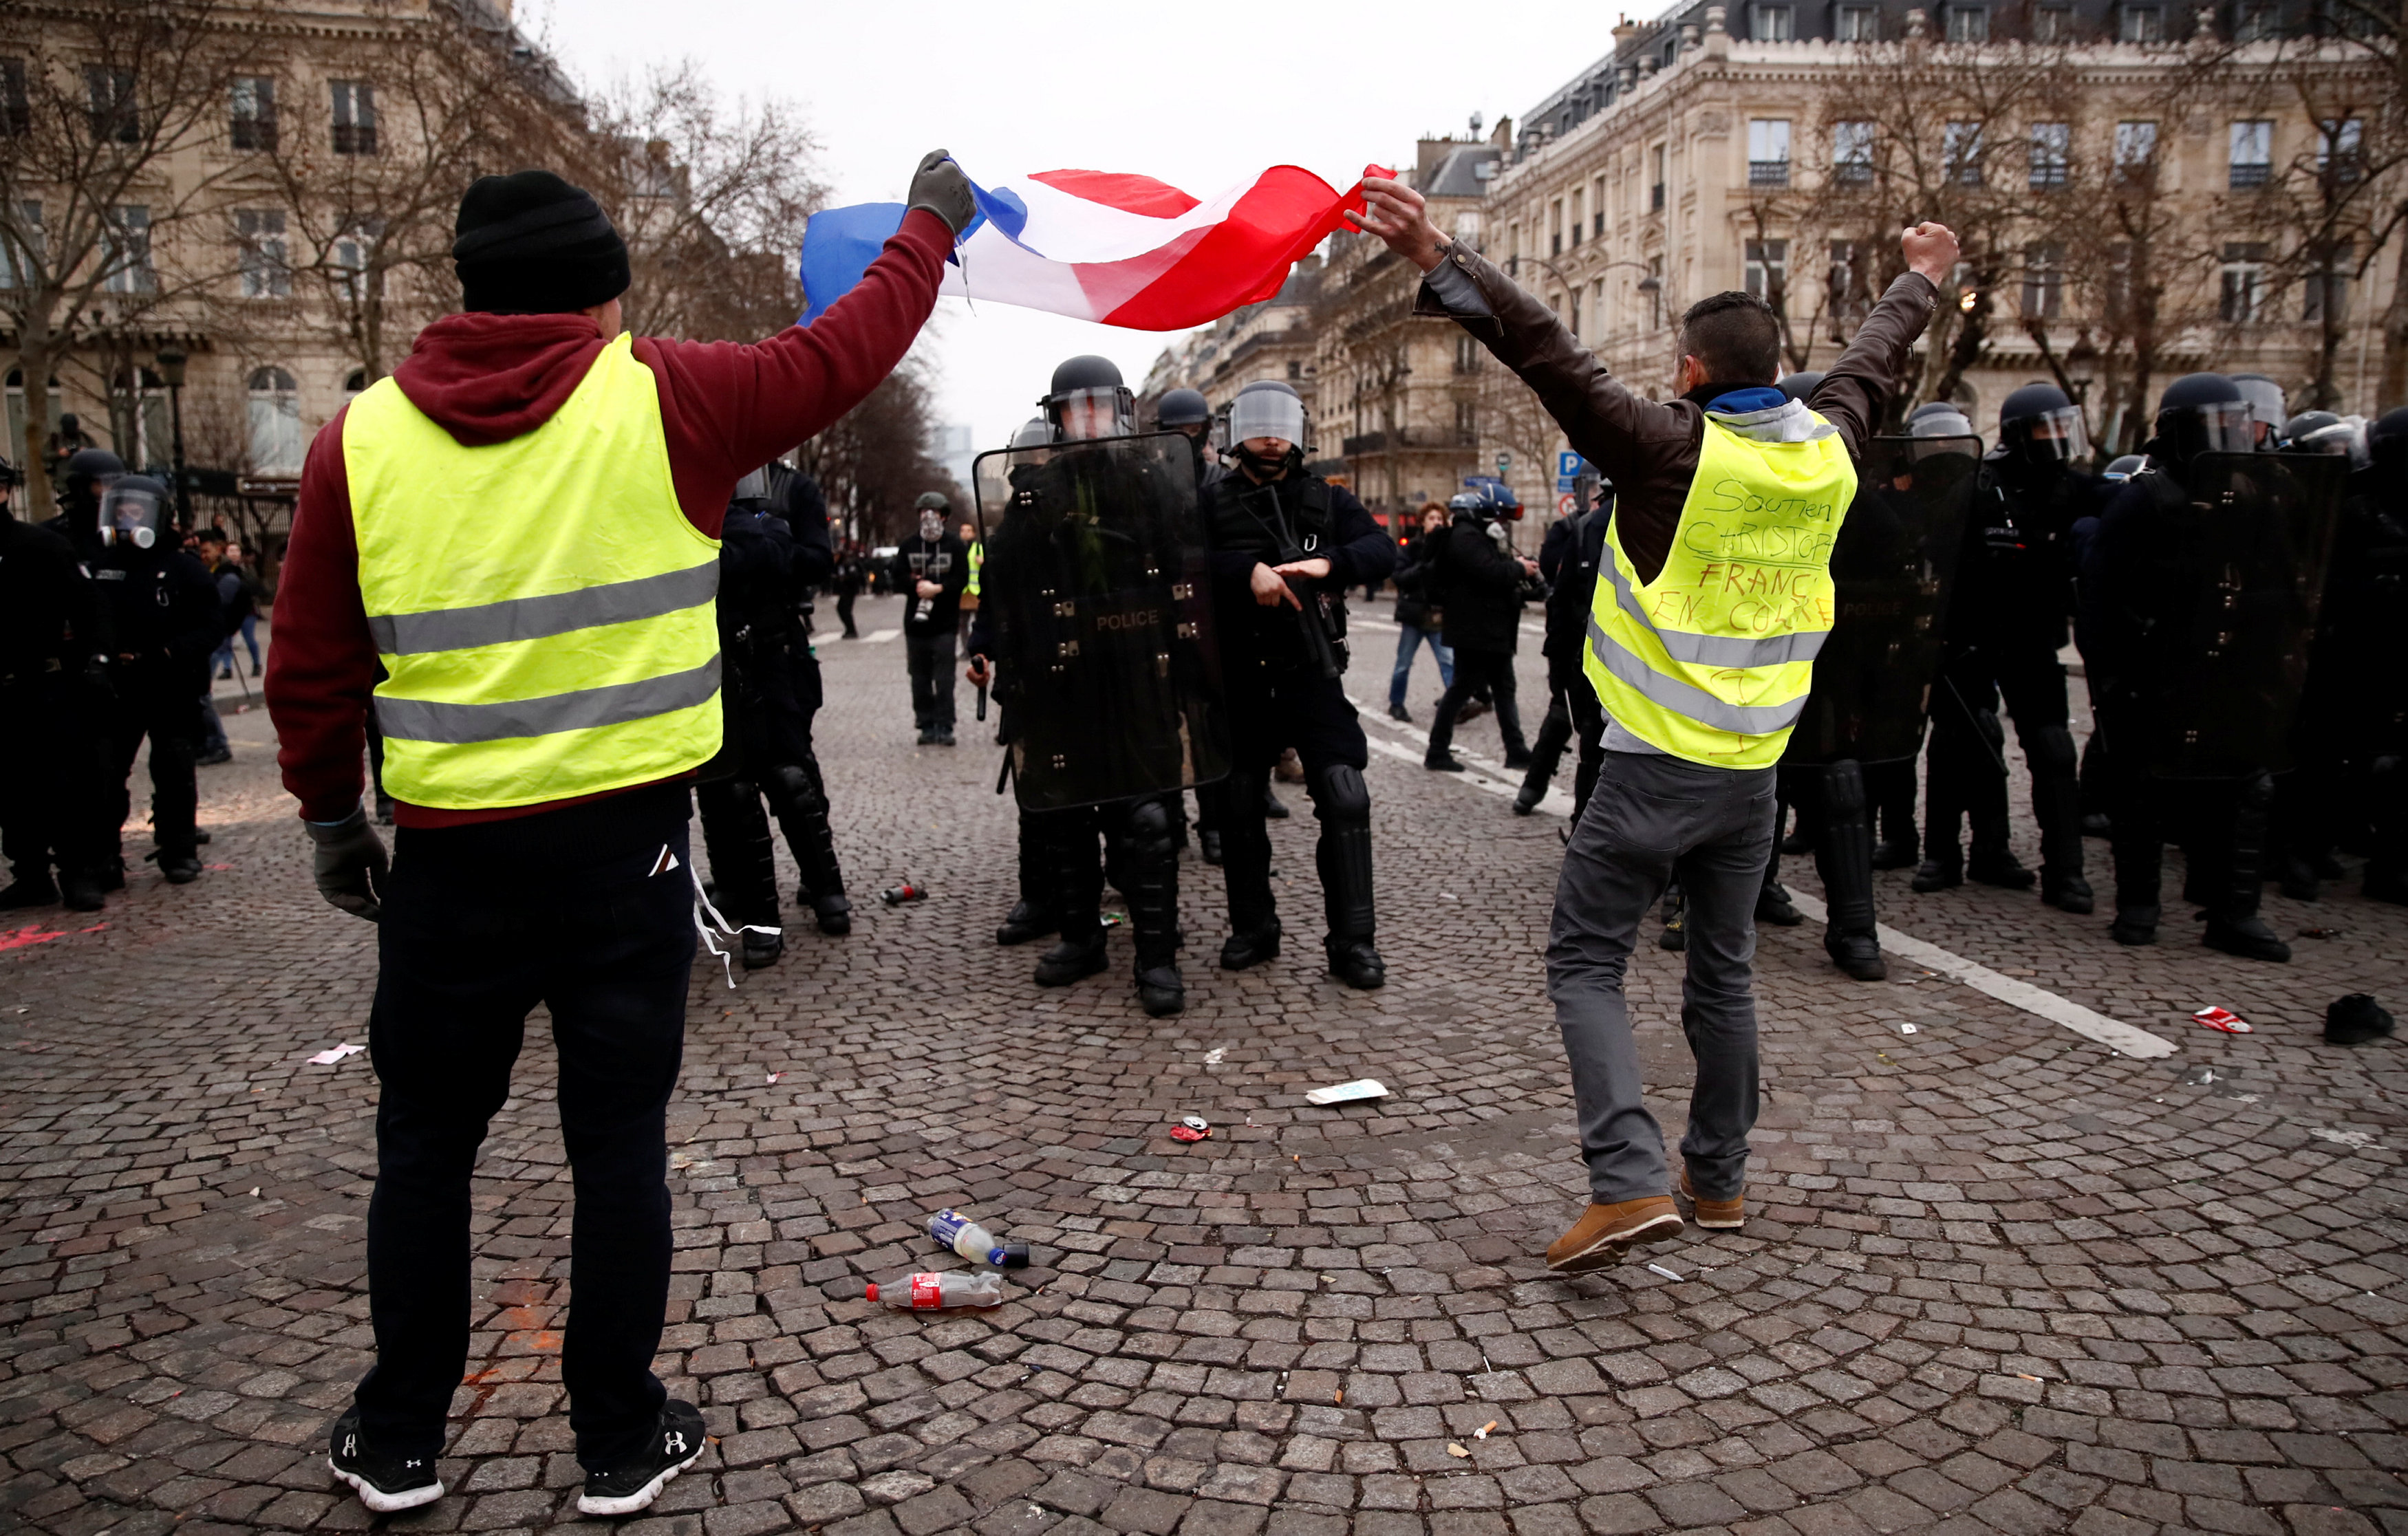 2019-01-12T143405Z_1178602420_RC121FC00D20_RTRMADP_3_FRANCE-PROTESTS